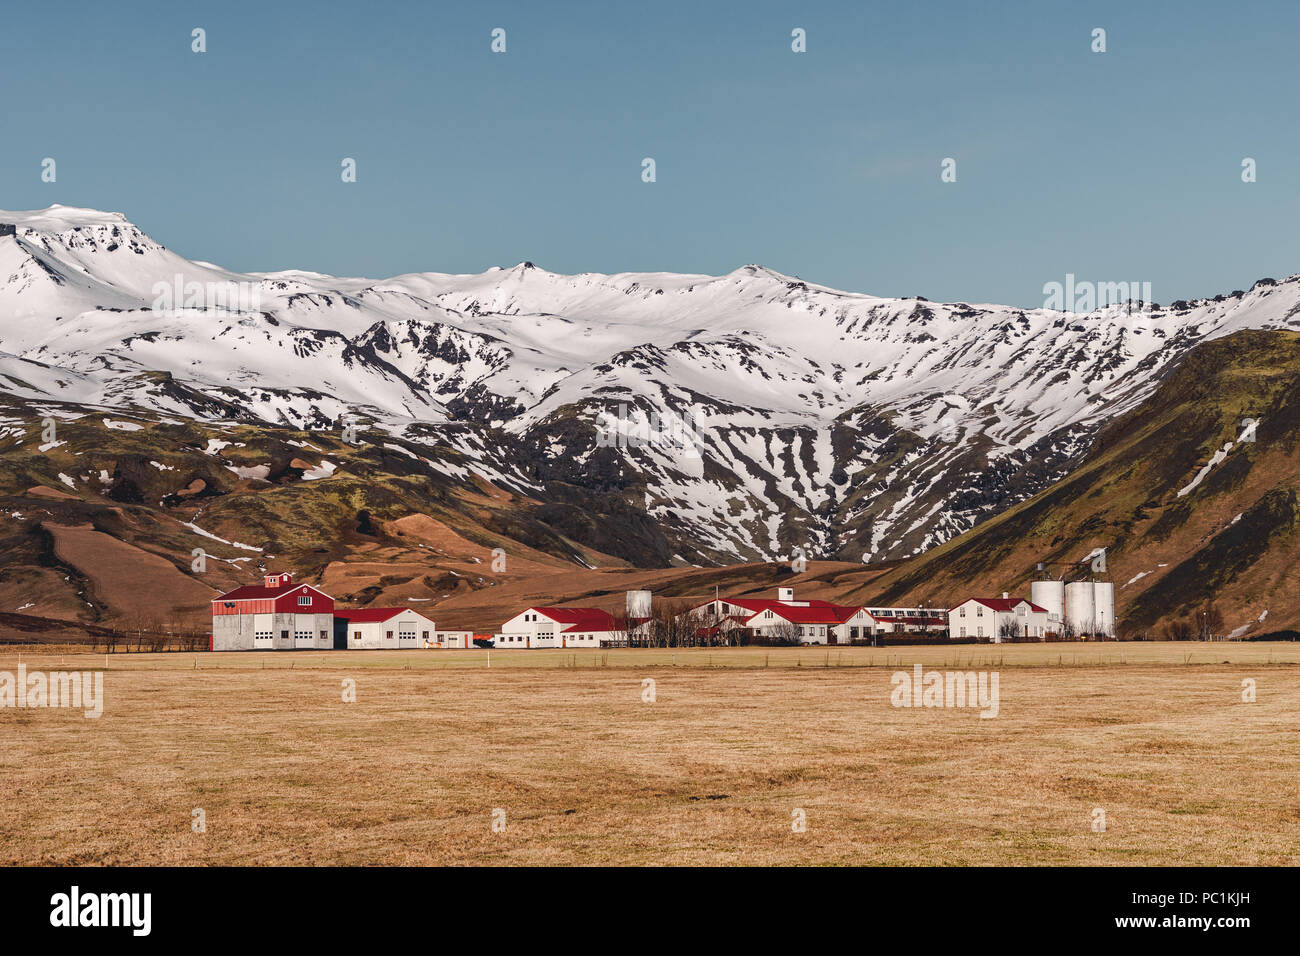 Typical Icelandic landscape with white houses red roof against mountains in small village in South Iceland. Stock Photo